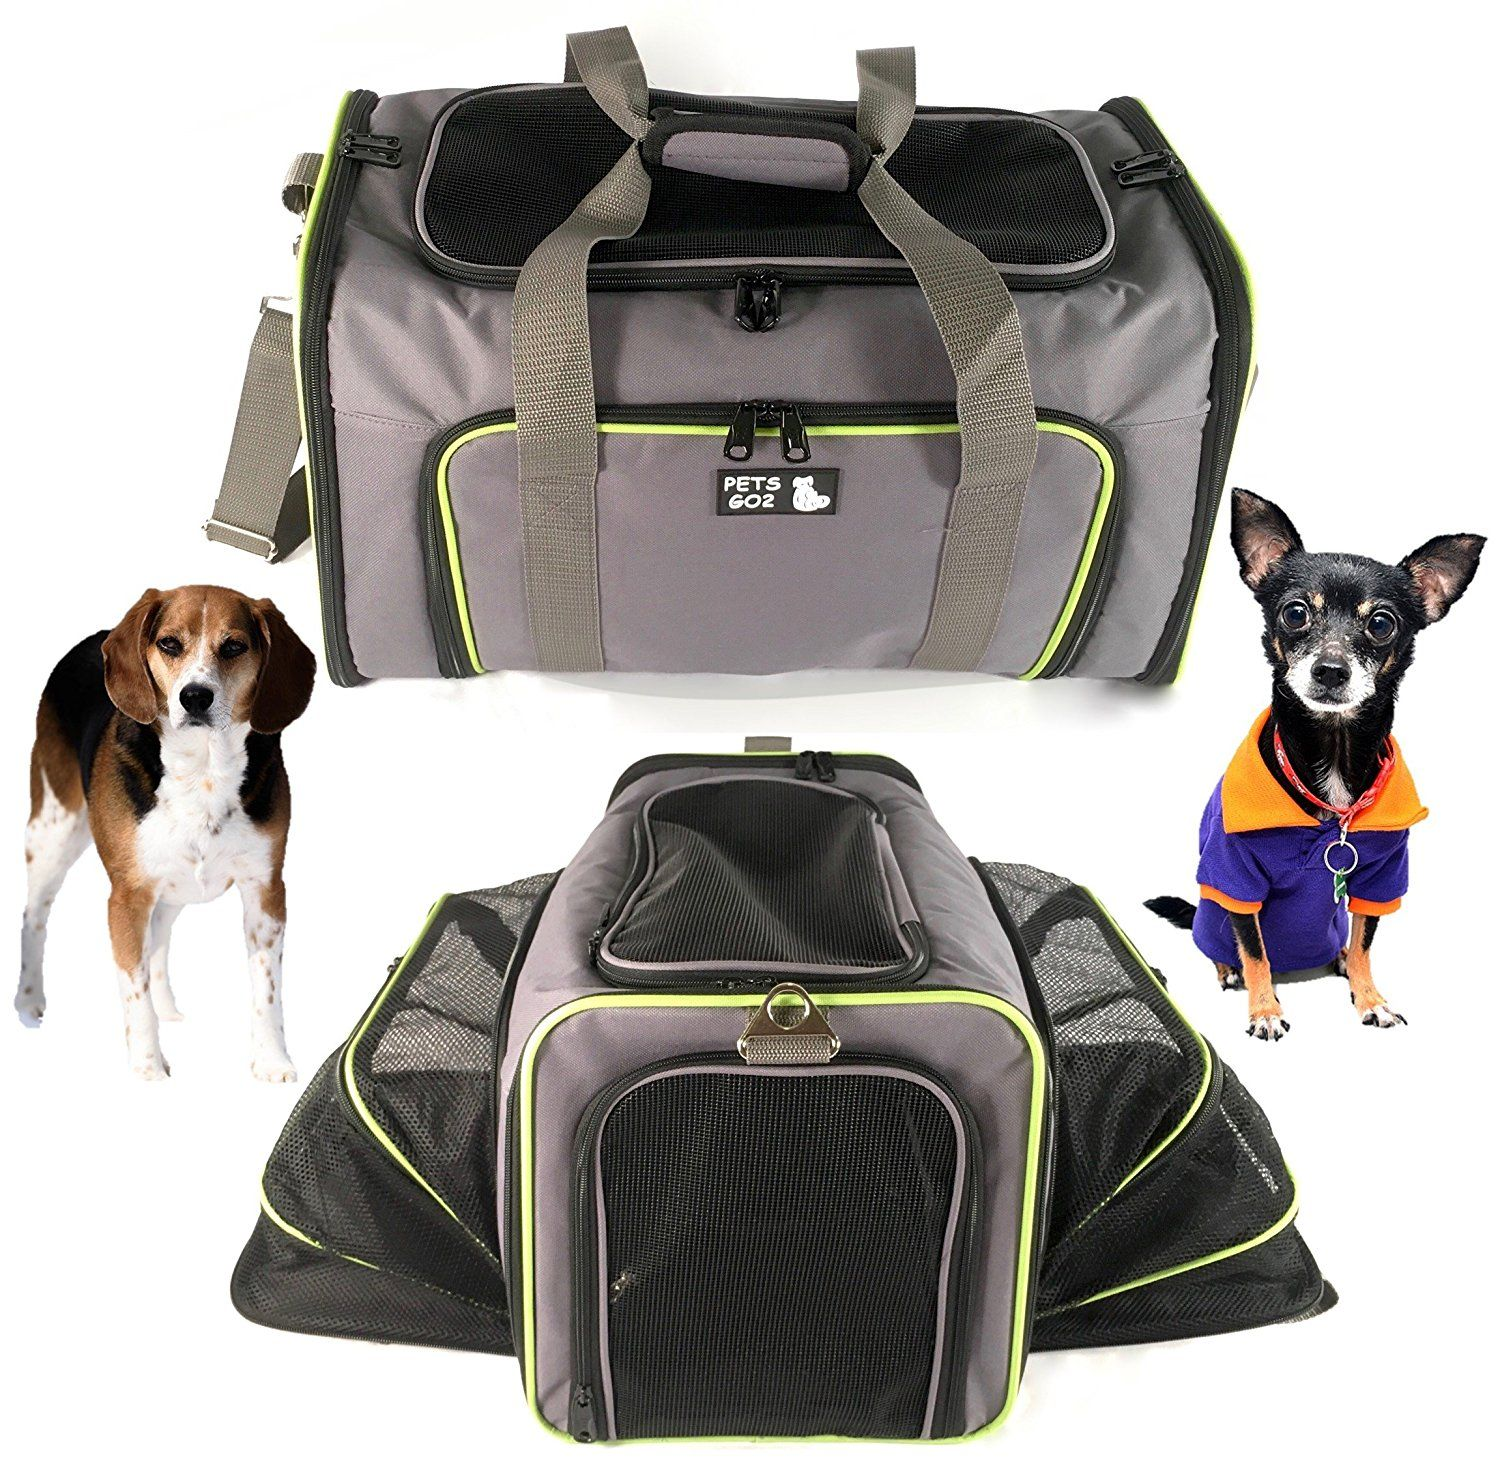 Pet Carrier For Dogs And Cats Airline Approved Quality Expandable Soft Animal Carriers Portable Soft Sided Air T Pet Carriers Dog Carrier Small Pet Carrier